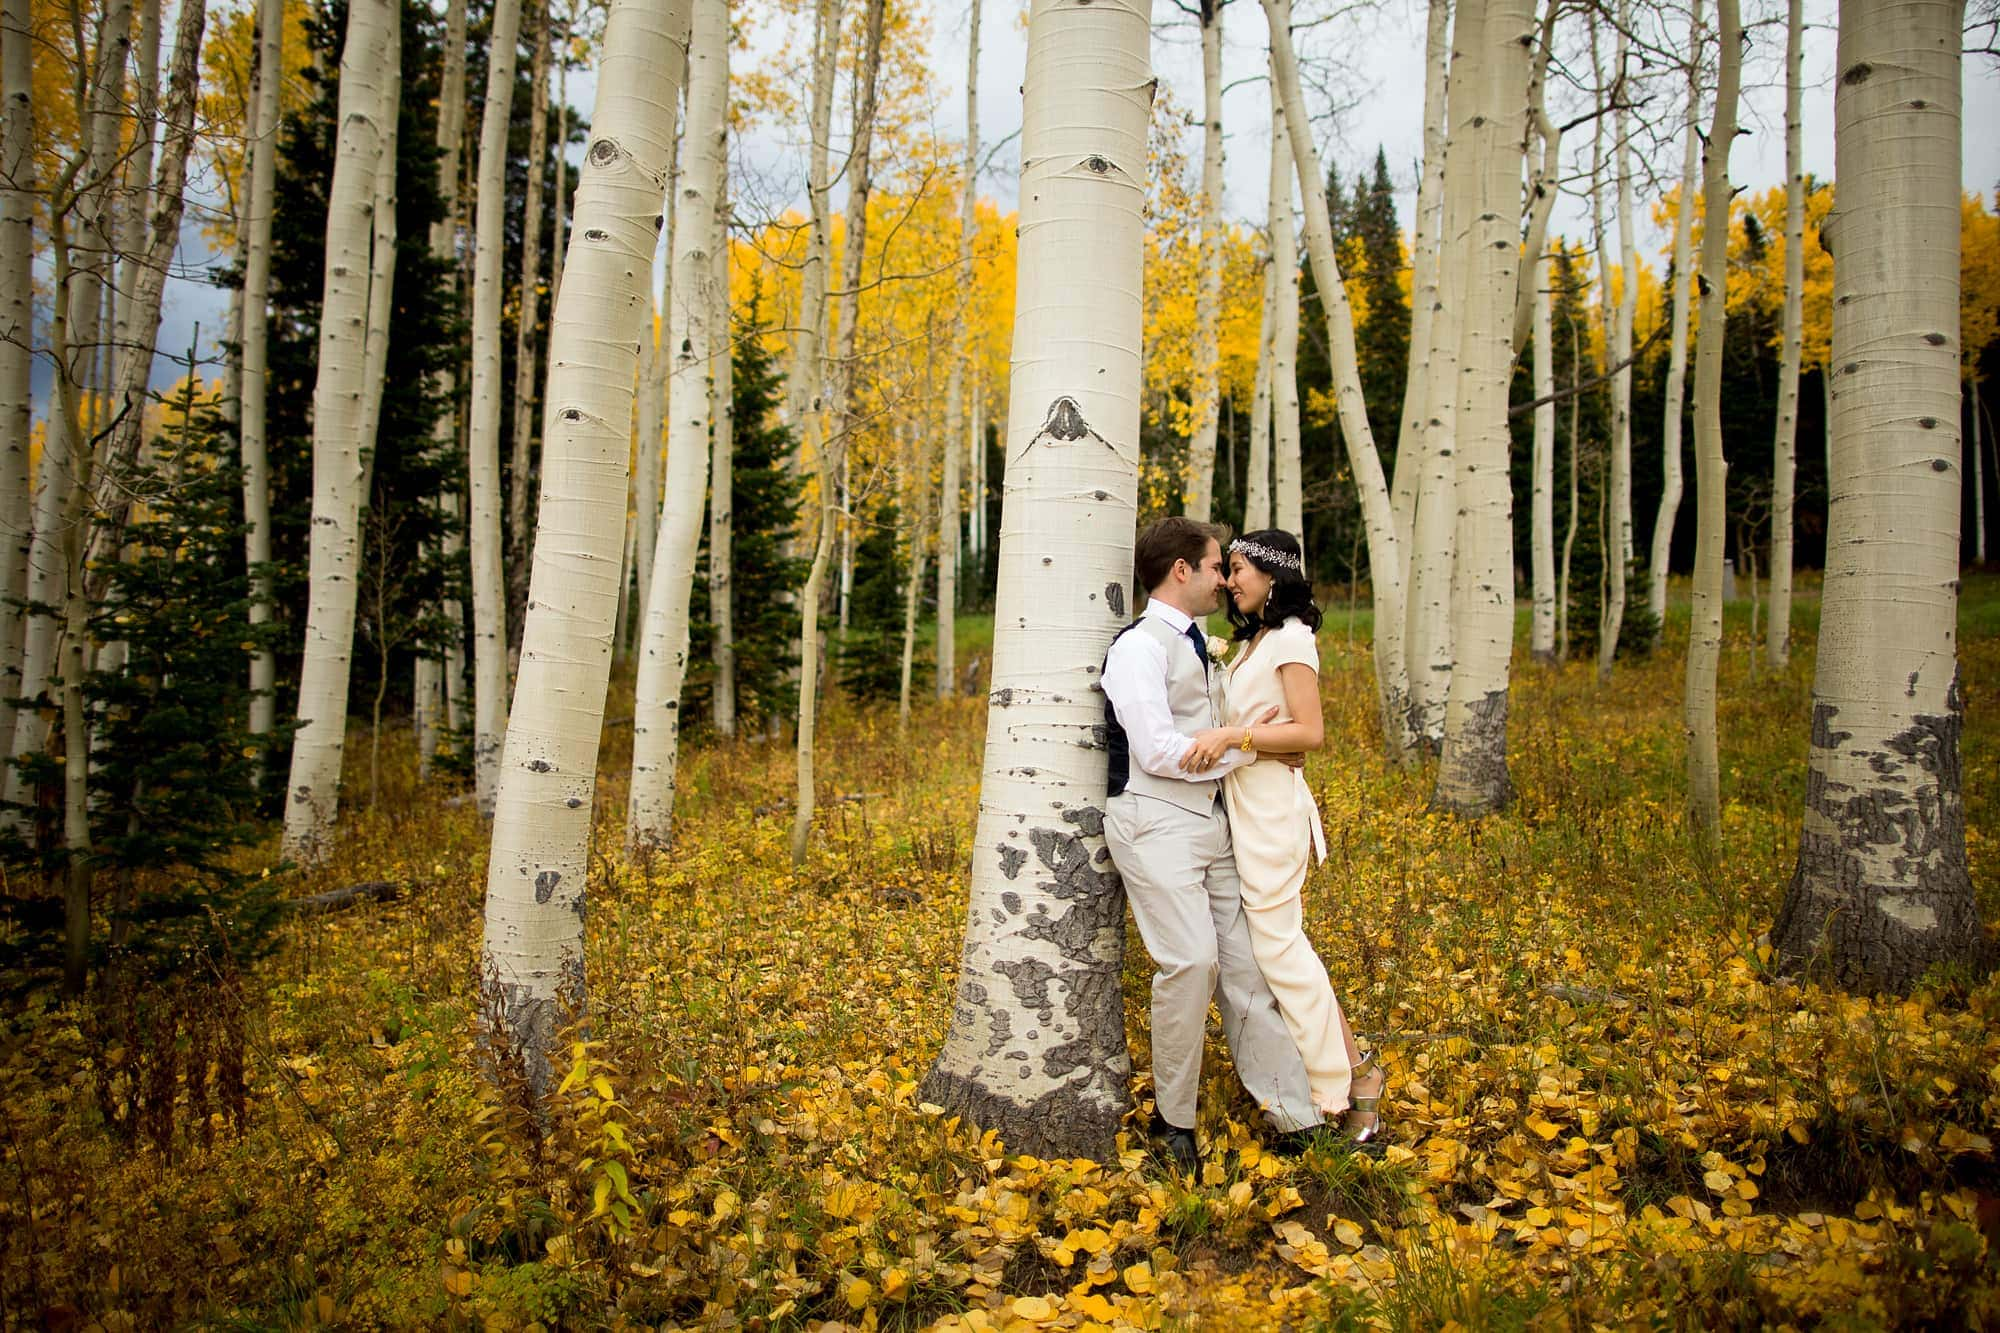 Allison and Walker share a moment together amongst the aspen trees after their Lynn Britt Cabin wedding in Snowmass Village near Aspen, Colorado.